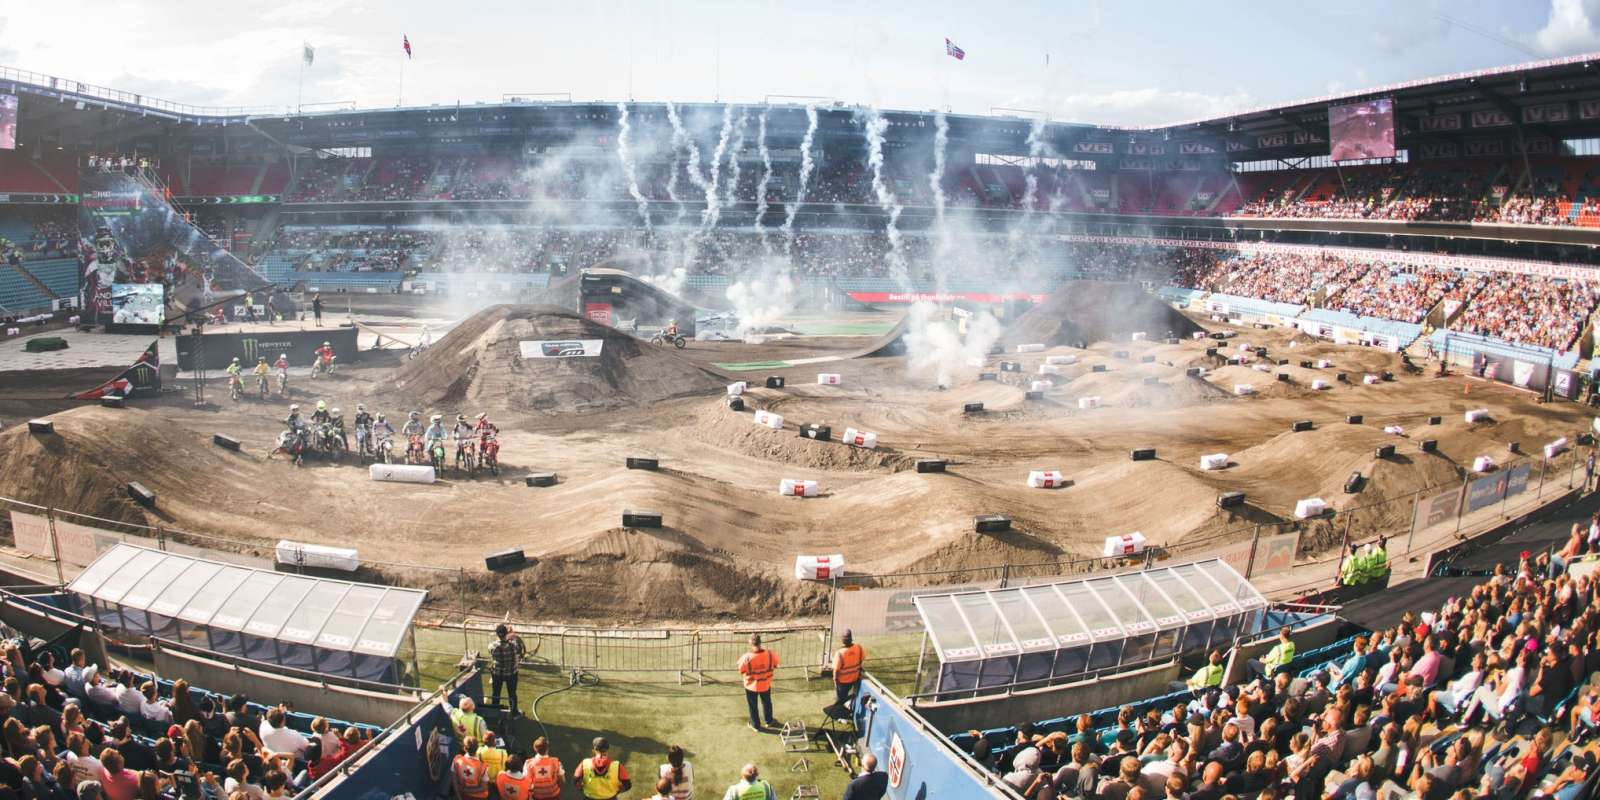 Ullevaal X, Ullevaal extreme, motorsport show by Andre Villa.